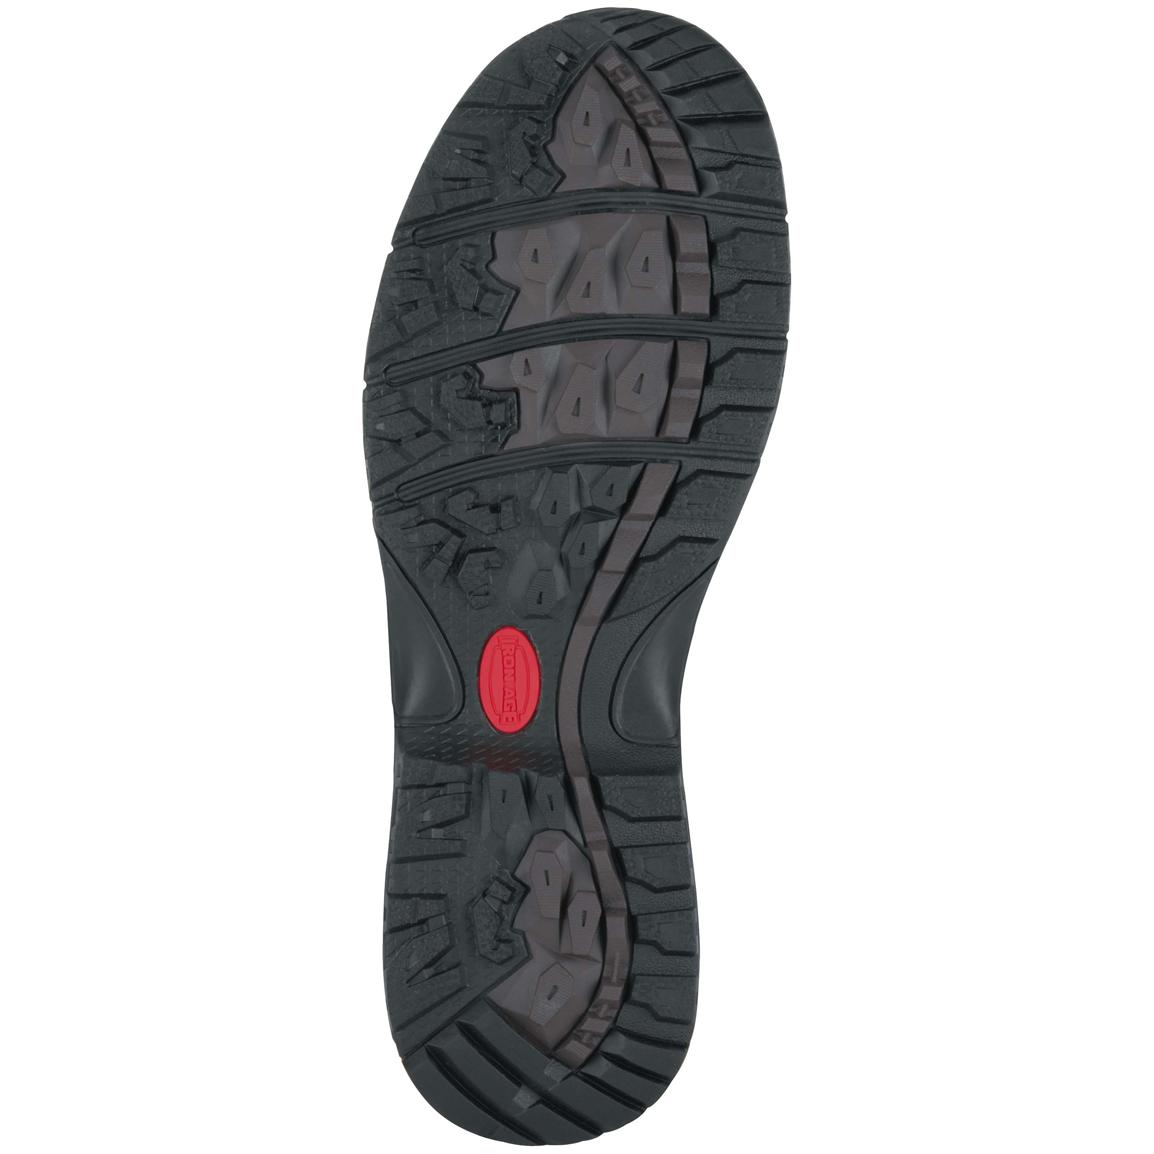 Rubber traction outsole